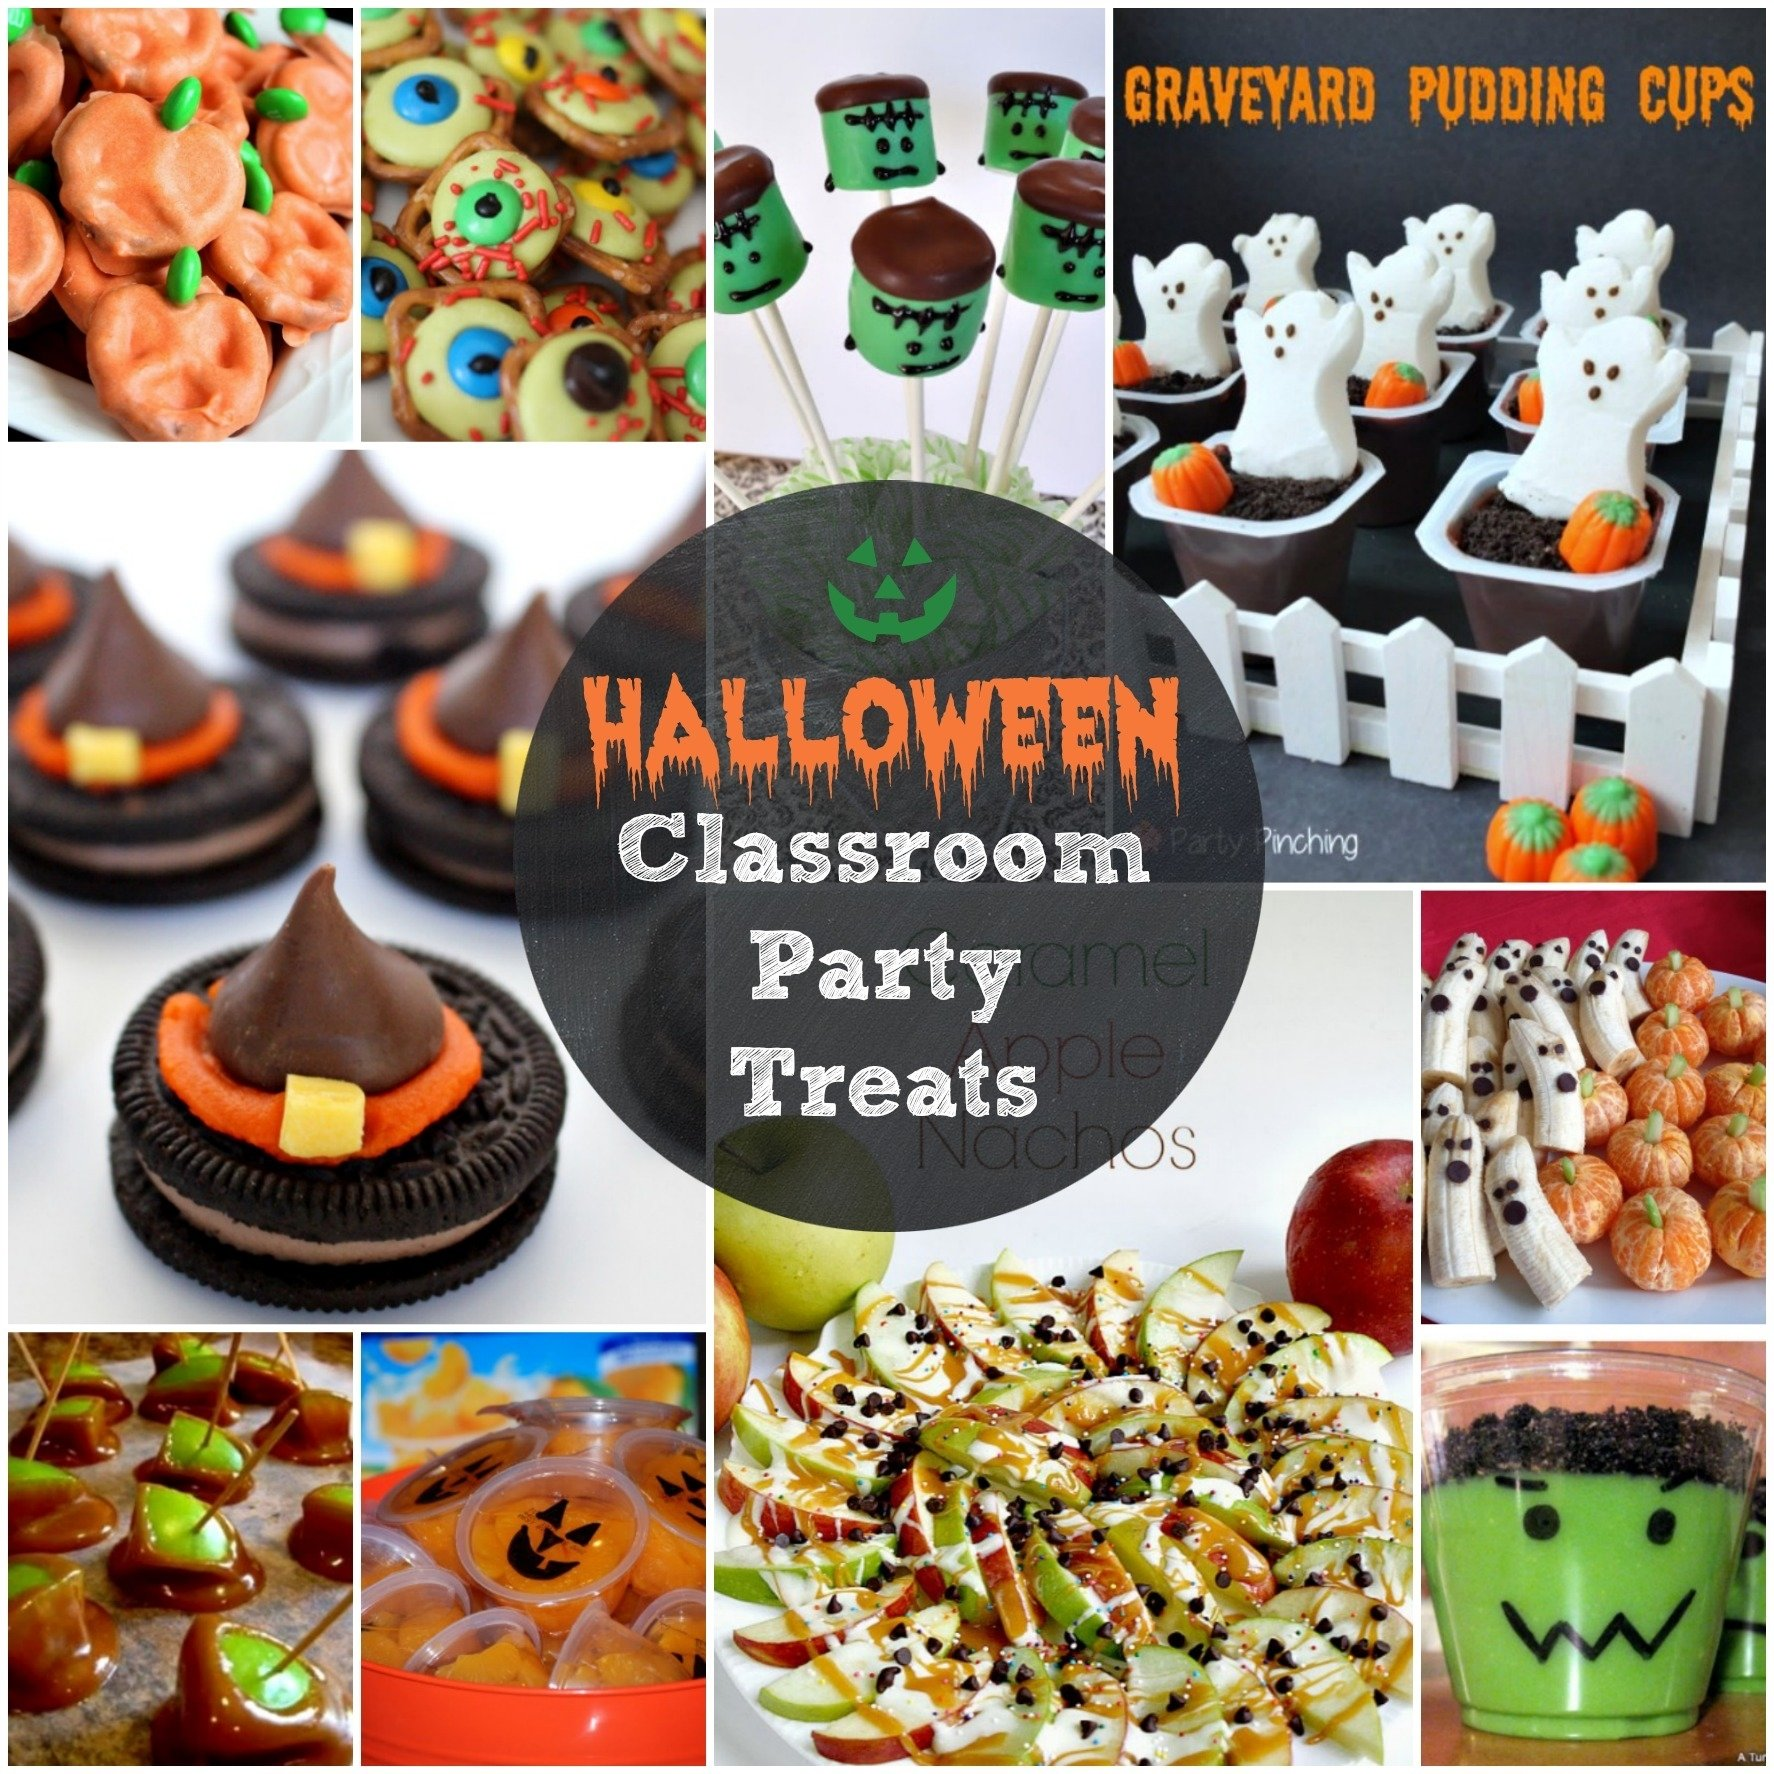 10 Unique Halloween Treat Ideas For School Parties healthy halloween treats 15 school party ideas that kids will love 1